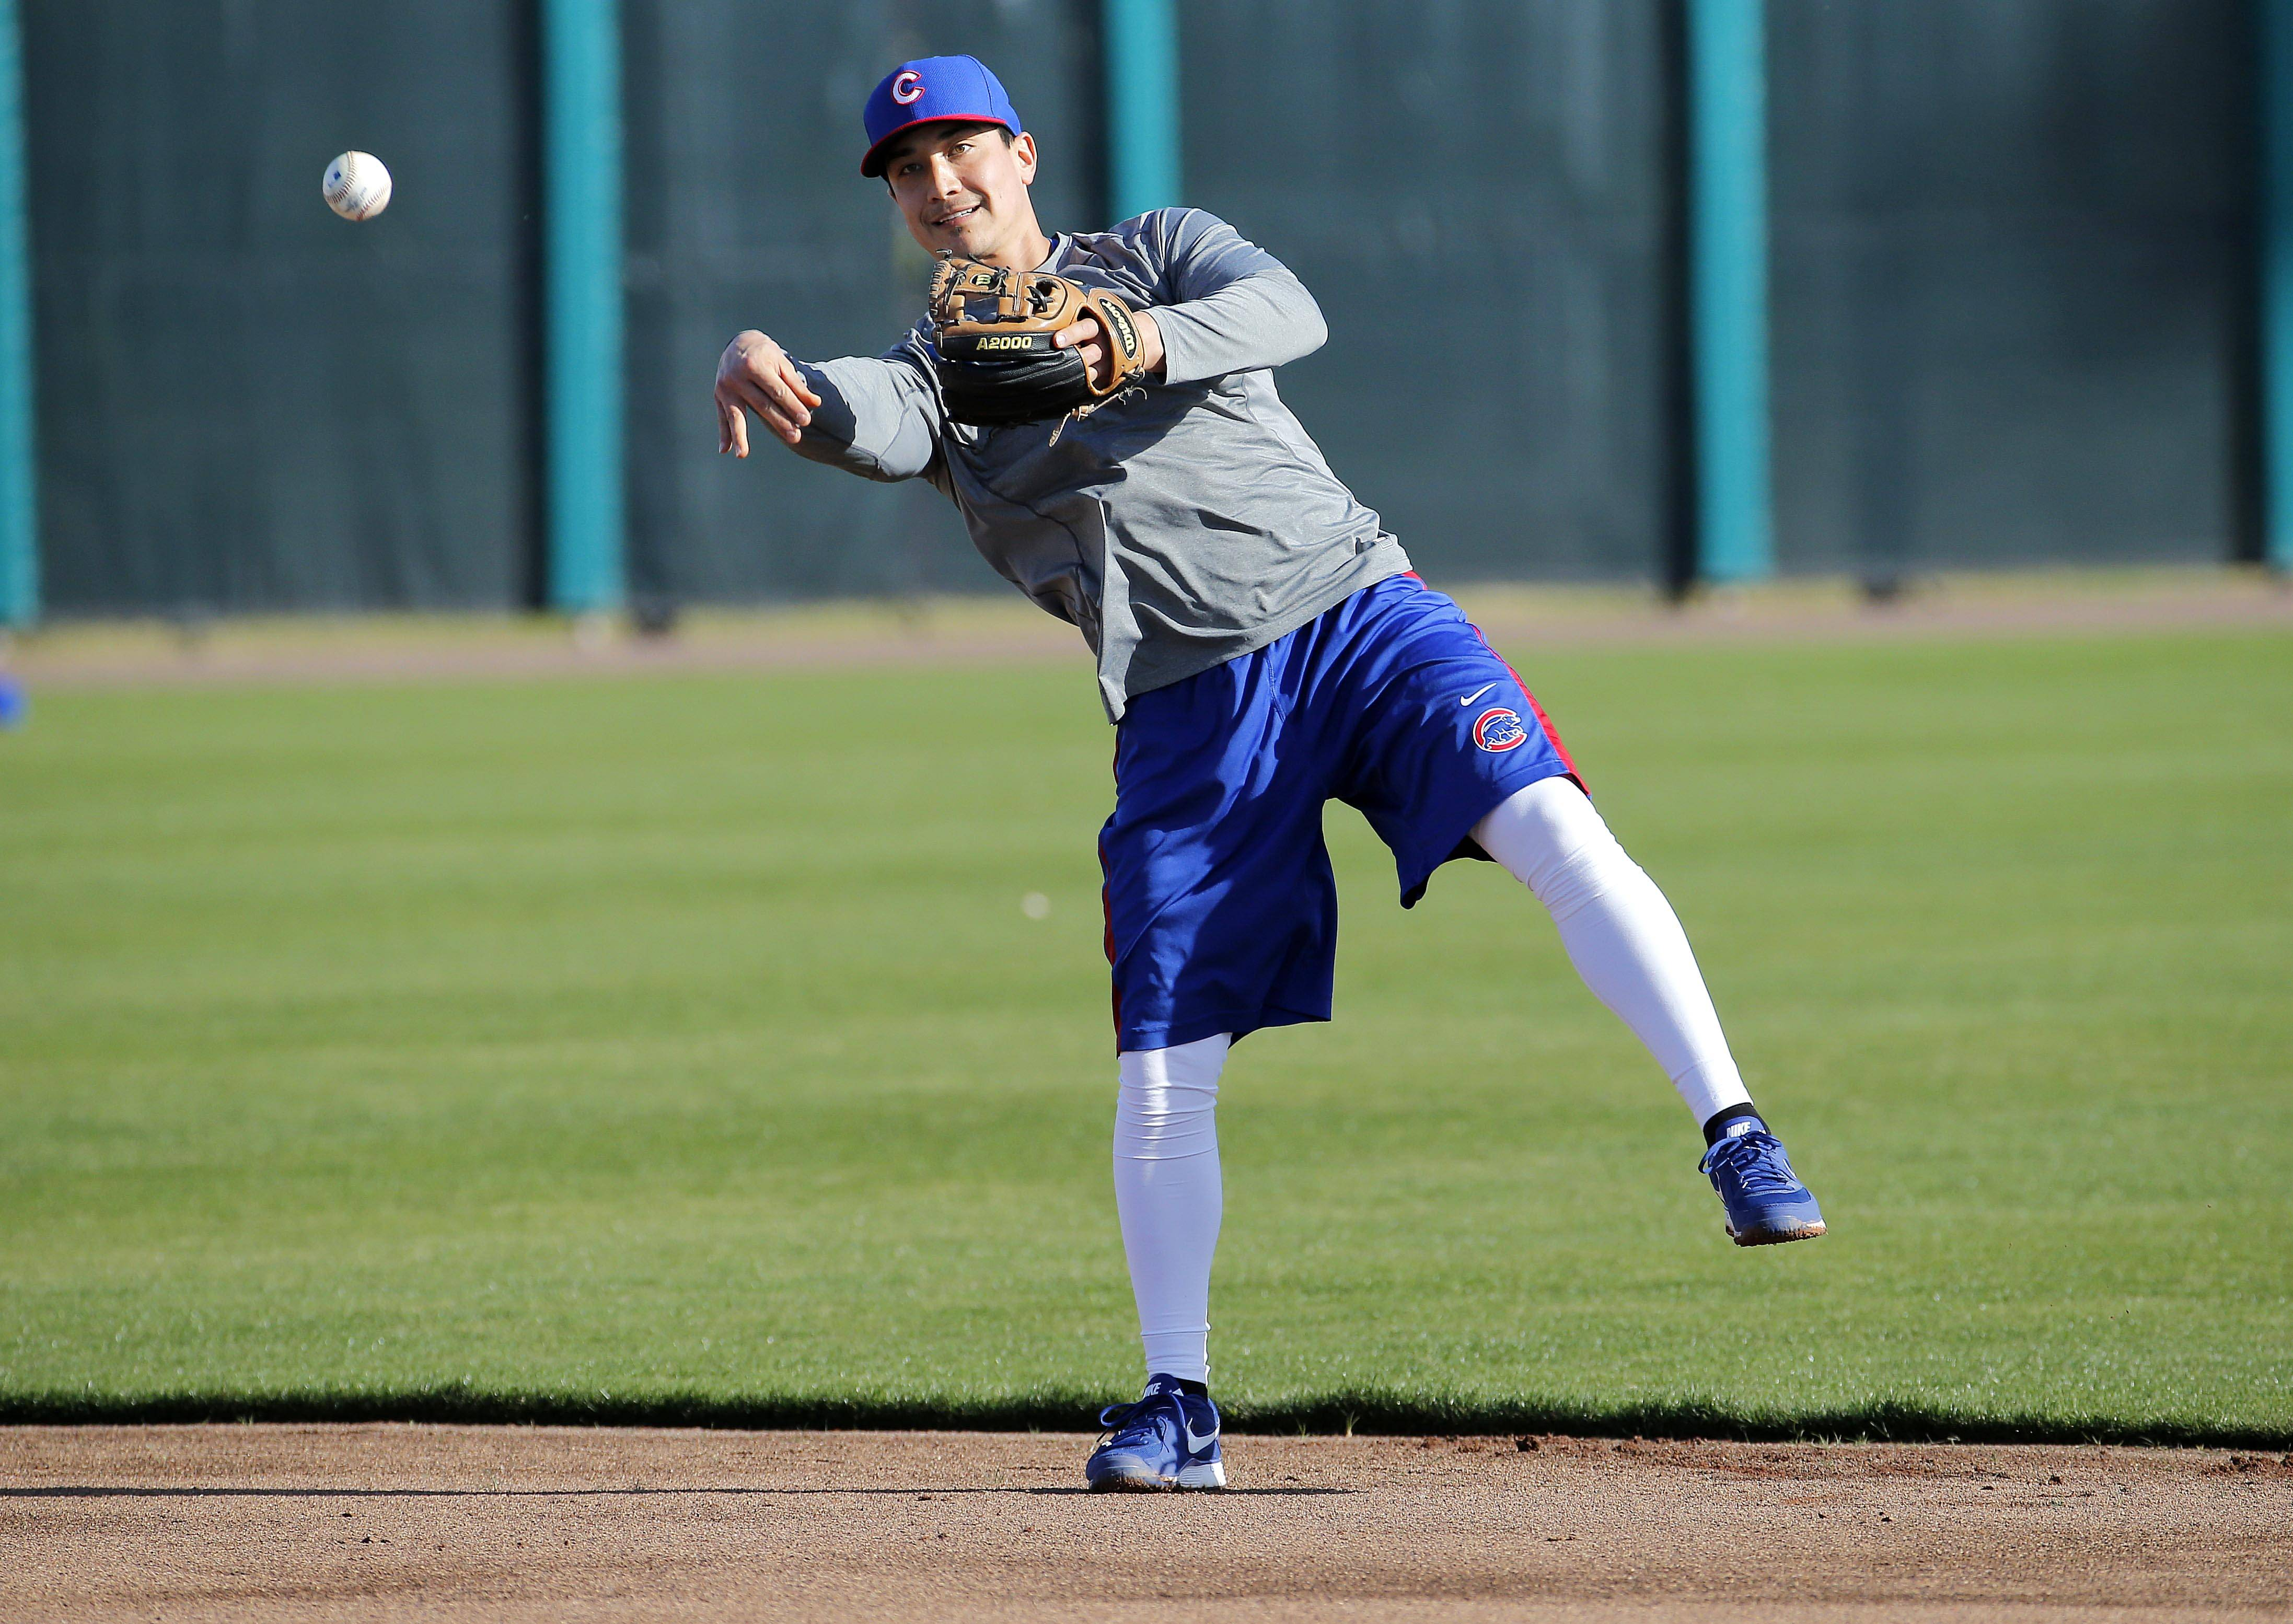 Cubs second baseman Darwin Barney throws before the team's first spring-training practice, Friday, Feb. 14, 2014, in Peoria, Ariz. (AP Photo/Matt York)